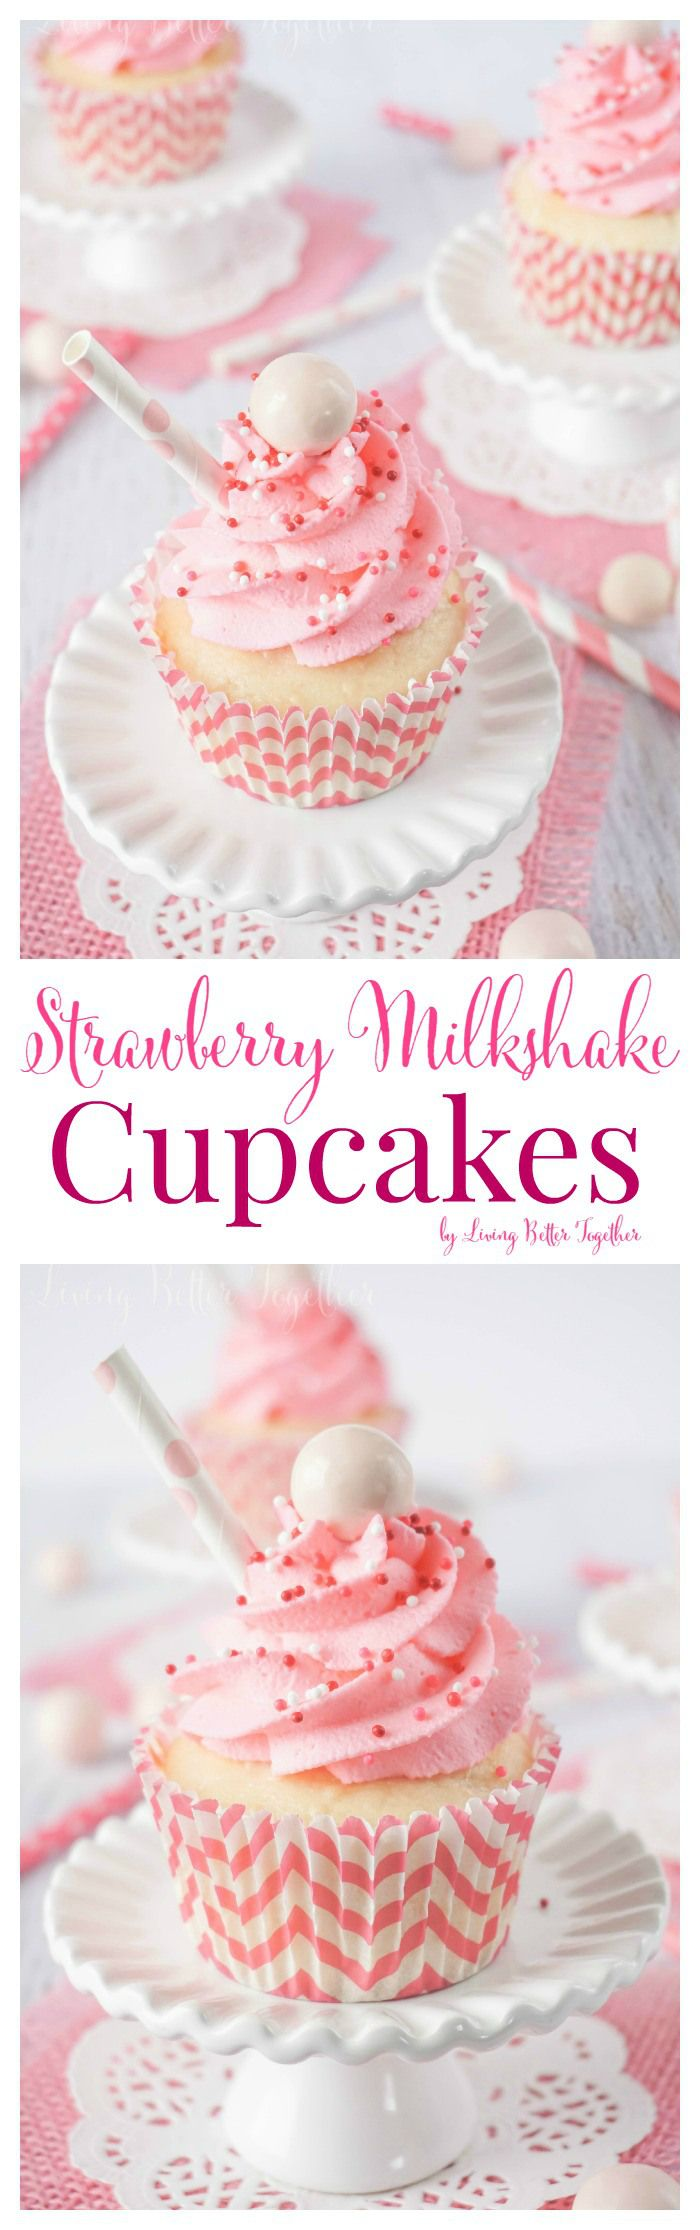 These Strawberry Milkshake Cupcakes have a vanilla malt base and are topped with a strawberry milk whipped cream frosting, sprinkles, and a whopper! Make them for an instant trip down memory lane.